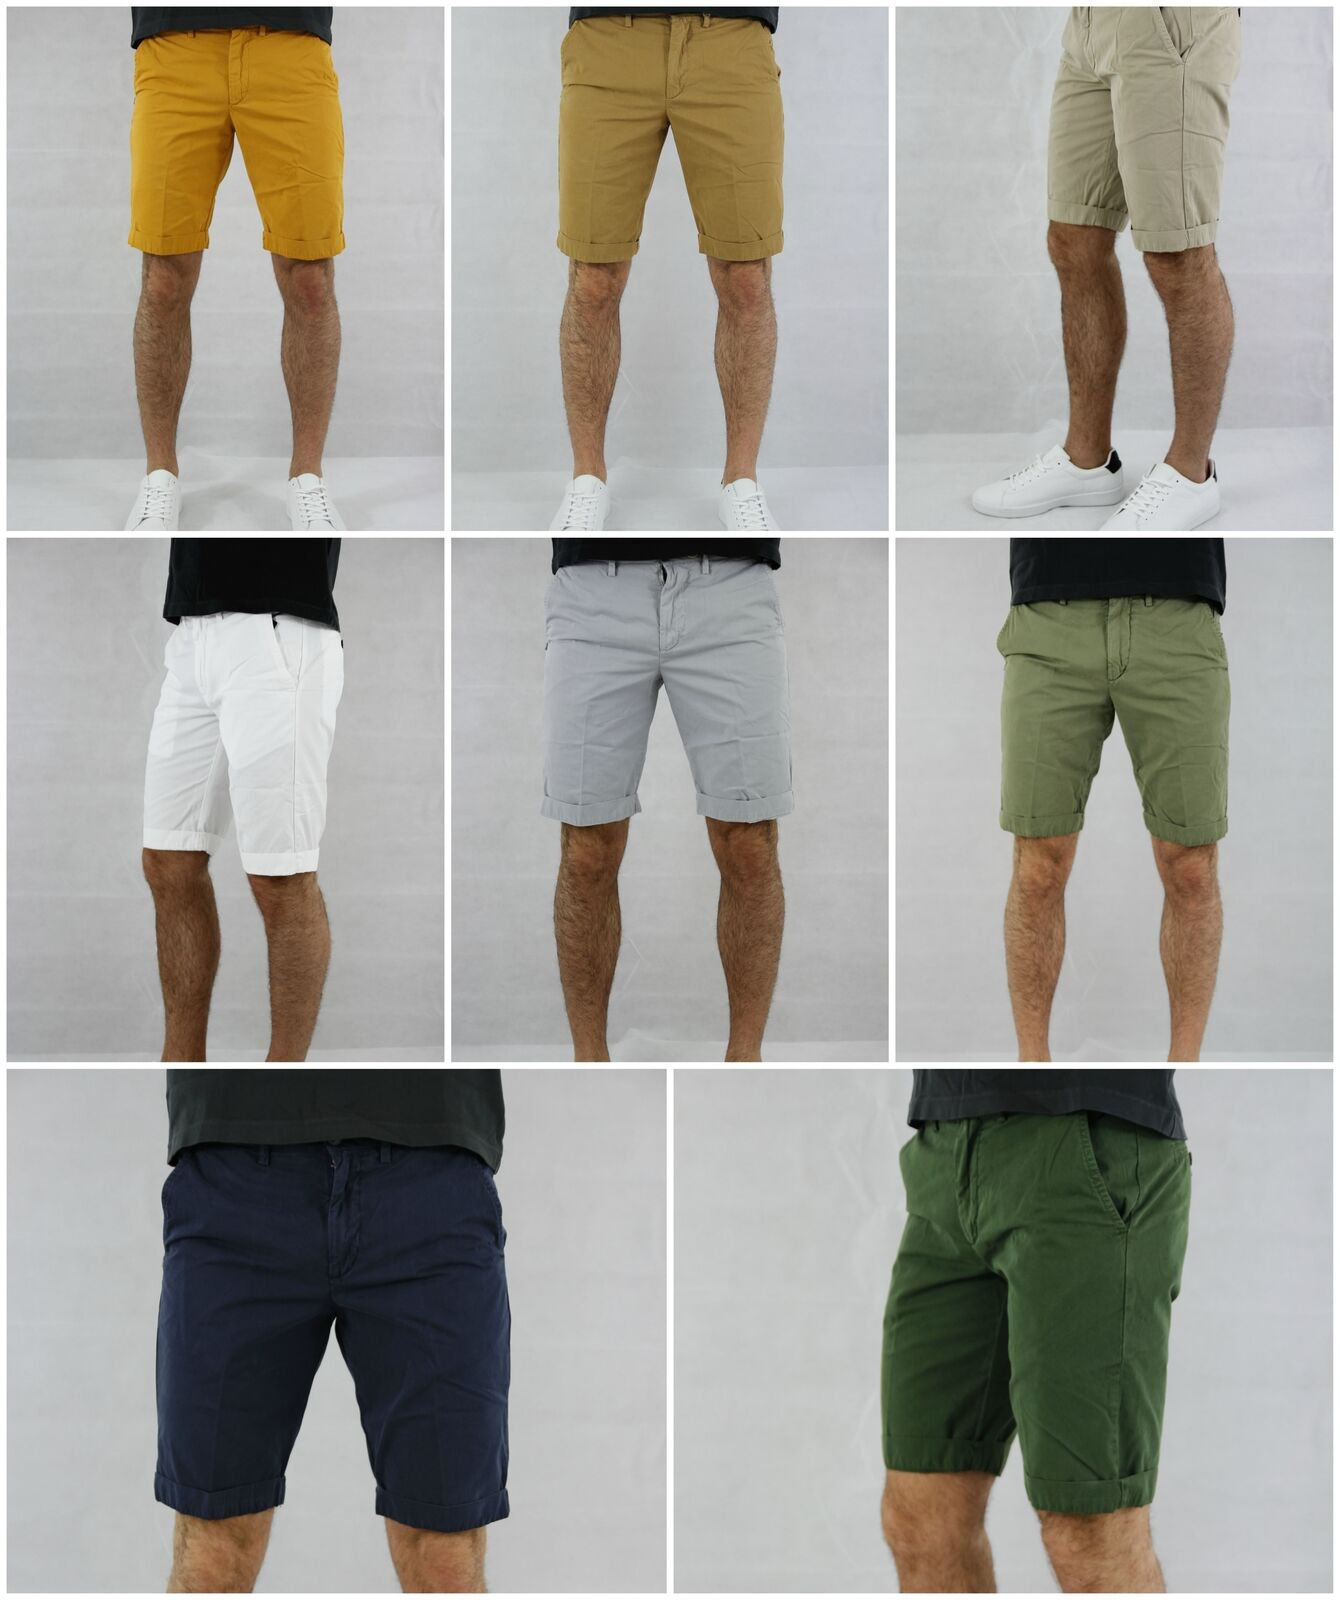 Shorts 40 Weft Sergent BE061 Man Regular Fit Cotton Made in  White Green Ye